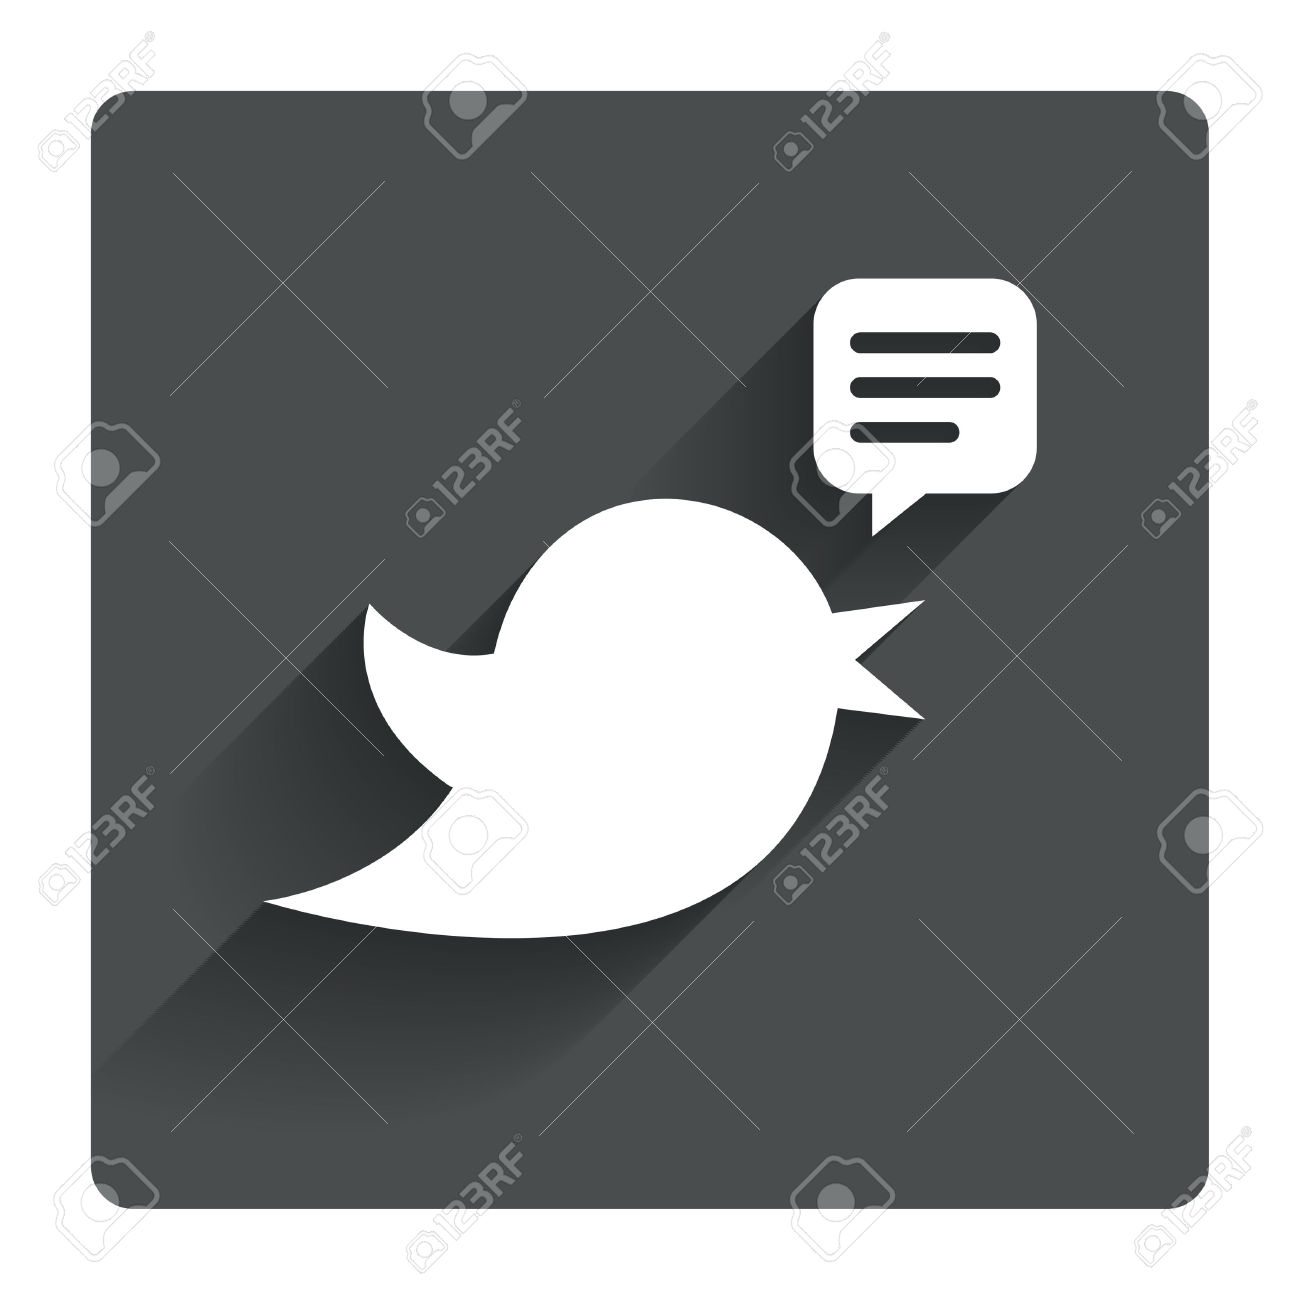 Black twitter clipart png Twitter clipart for website - ClipartFest png